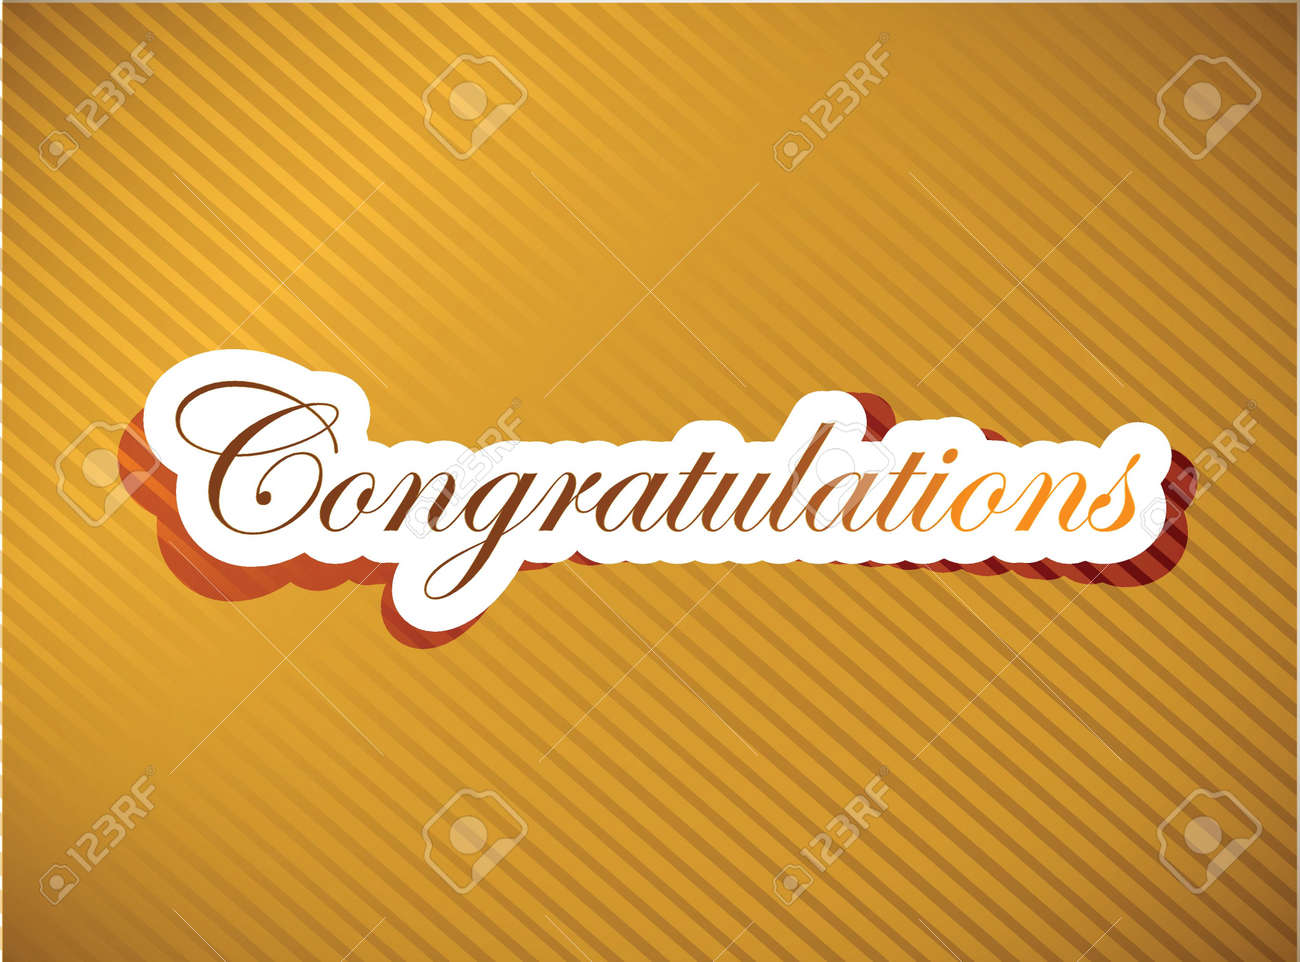 Congratulations lettering illustration design on a gold background Stock Vector - 18210401